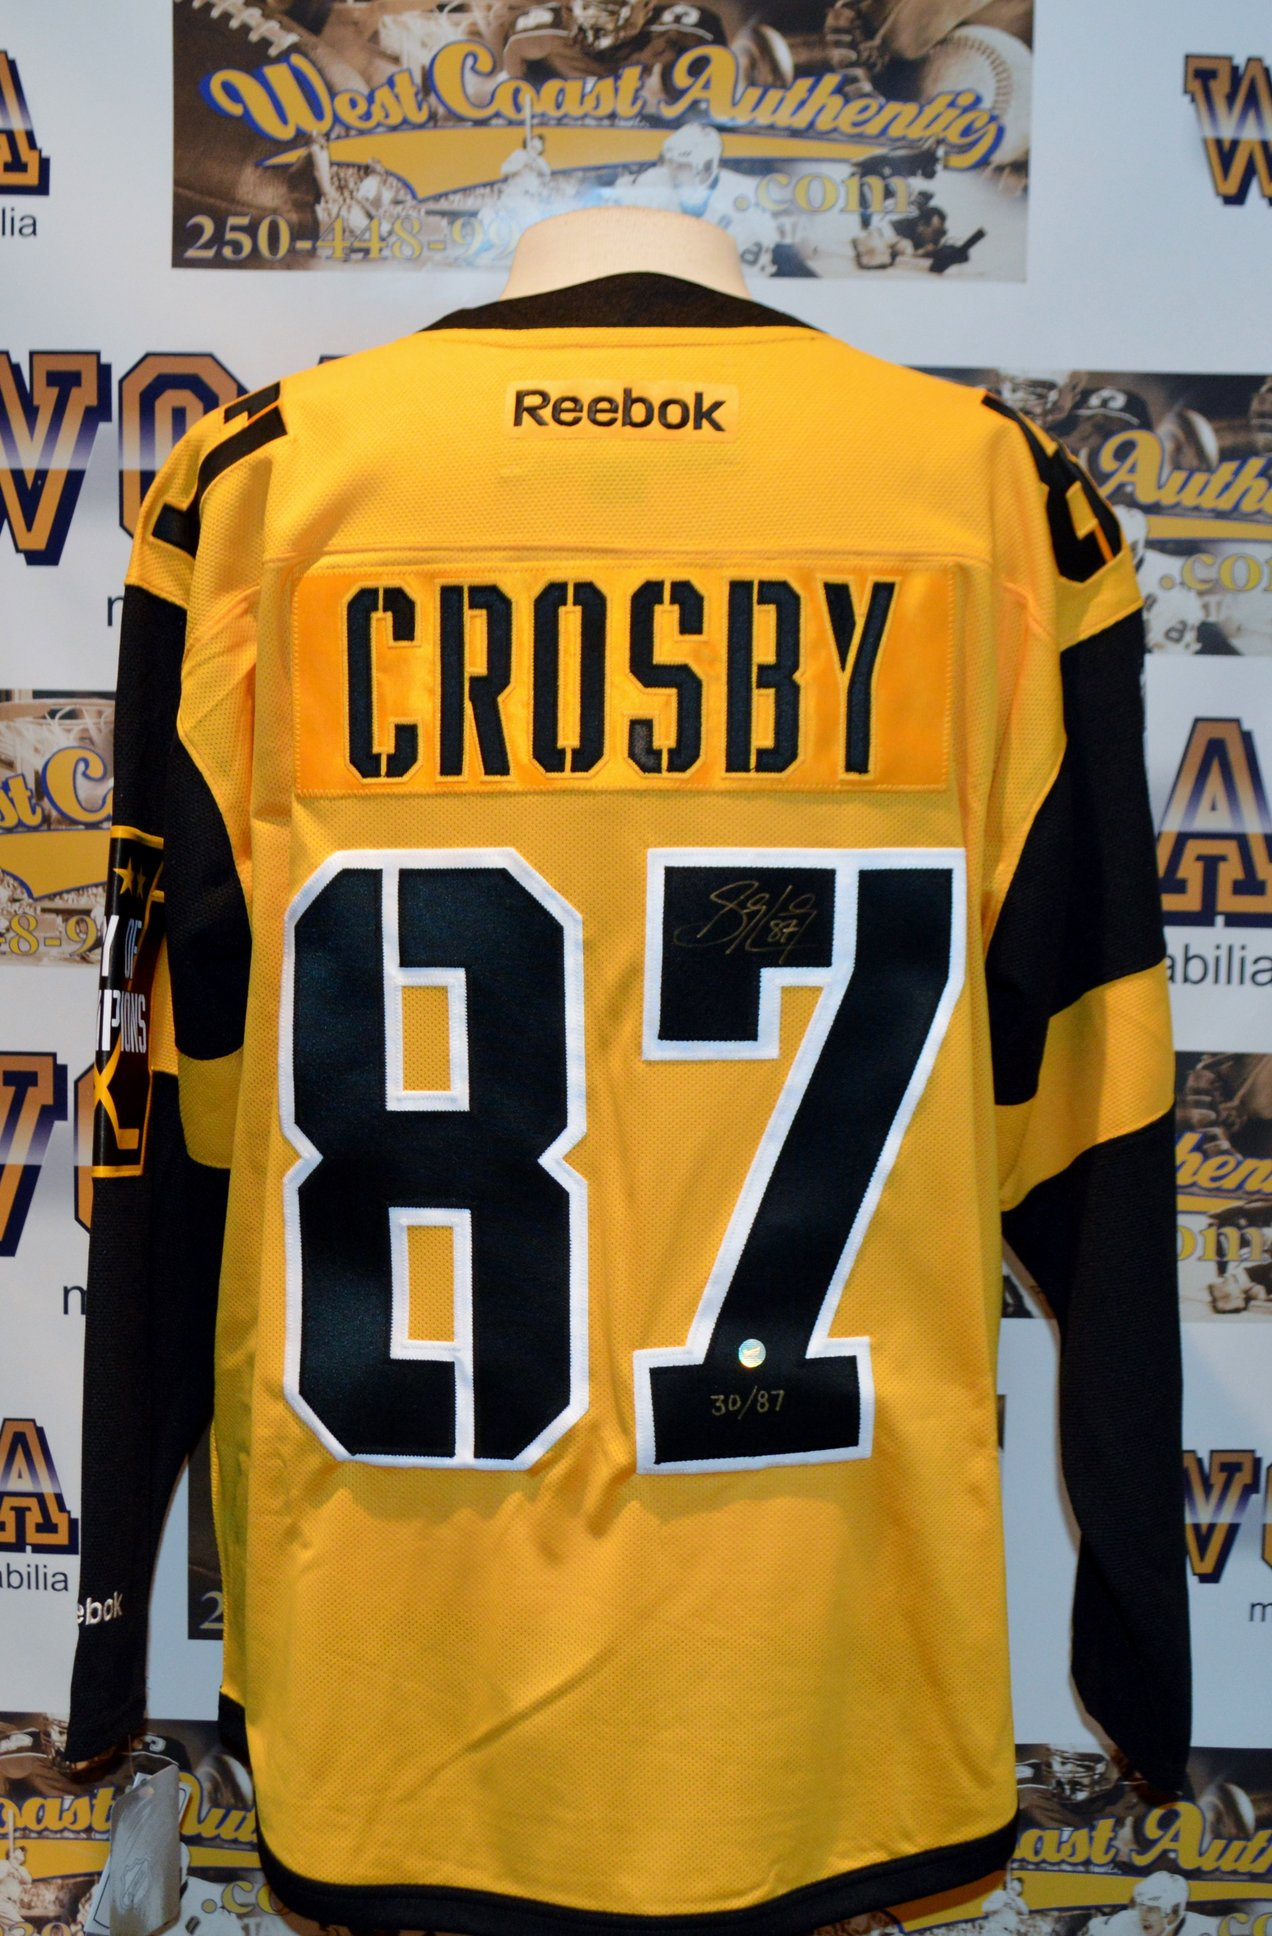 6ef7182e8 ... reduced stadium series pittsburgh penguins jersey.  rszwestcoastauthenticnhlpenguinssidneycrosbyautographedjersey2 e098d 6dcd2